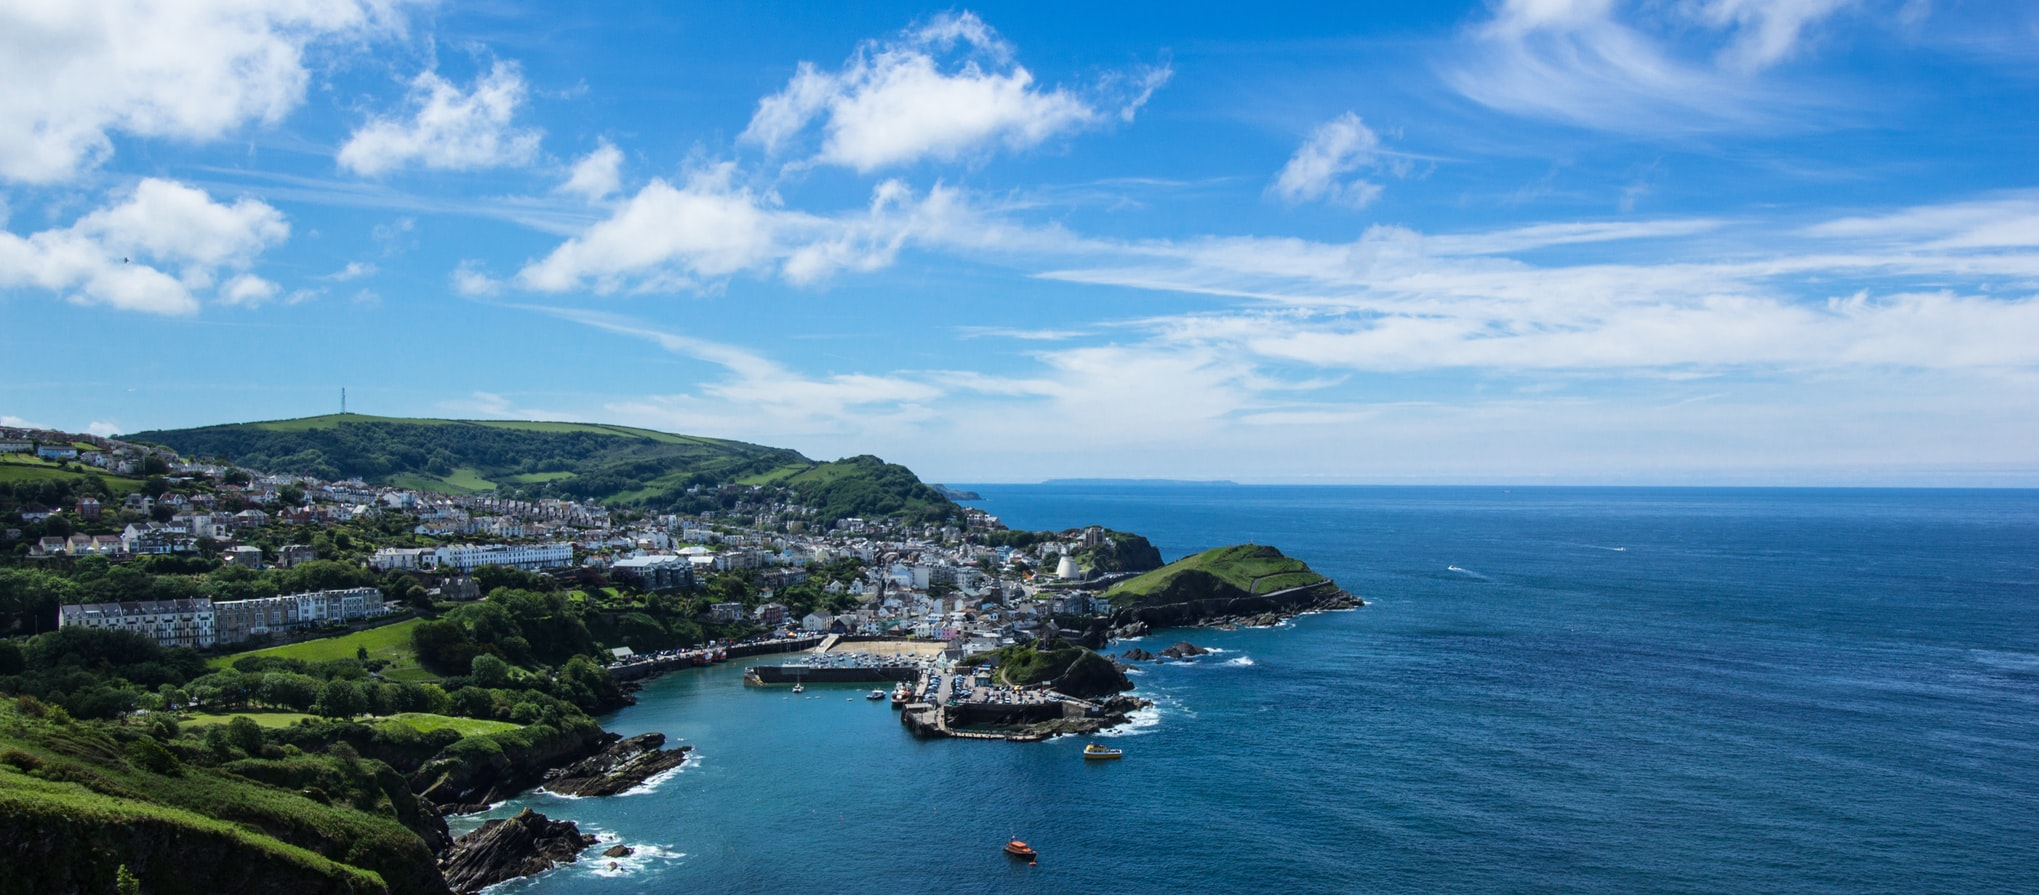 Ilfracombe from afar